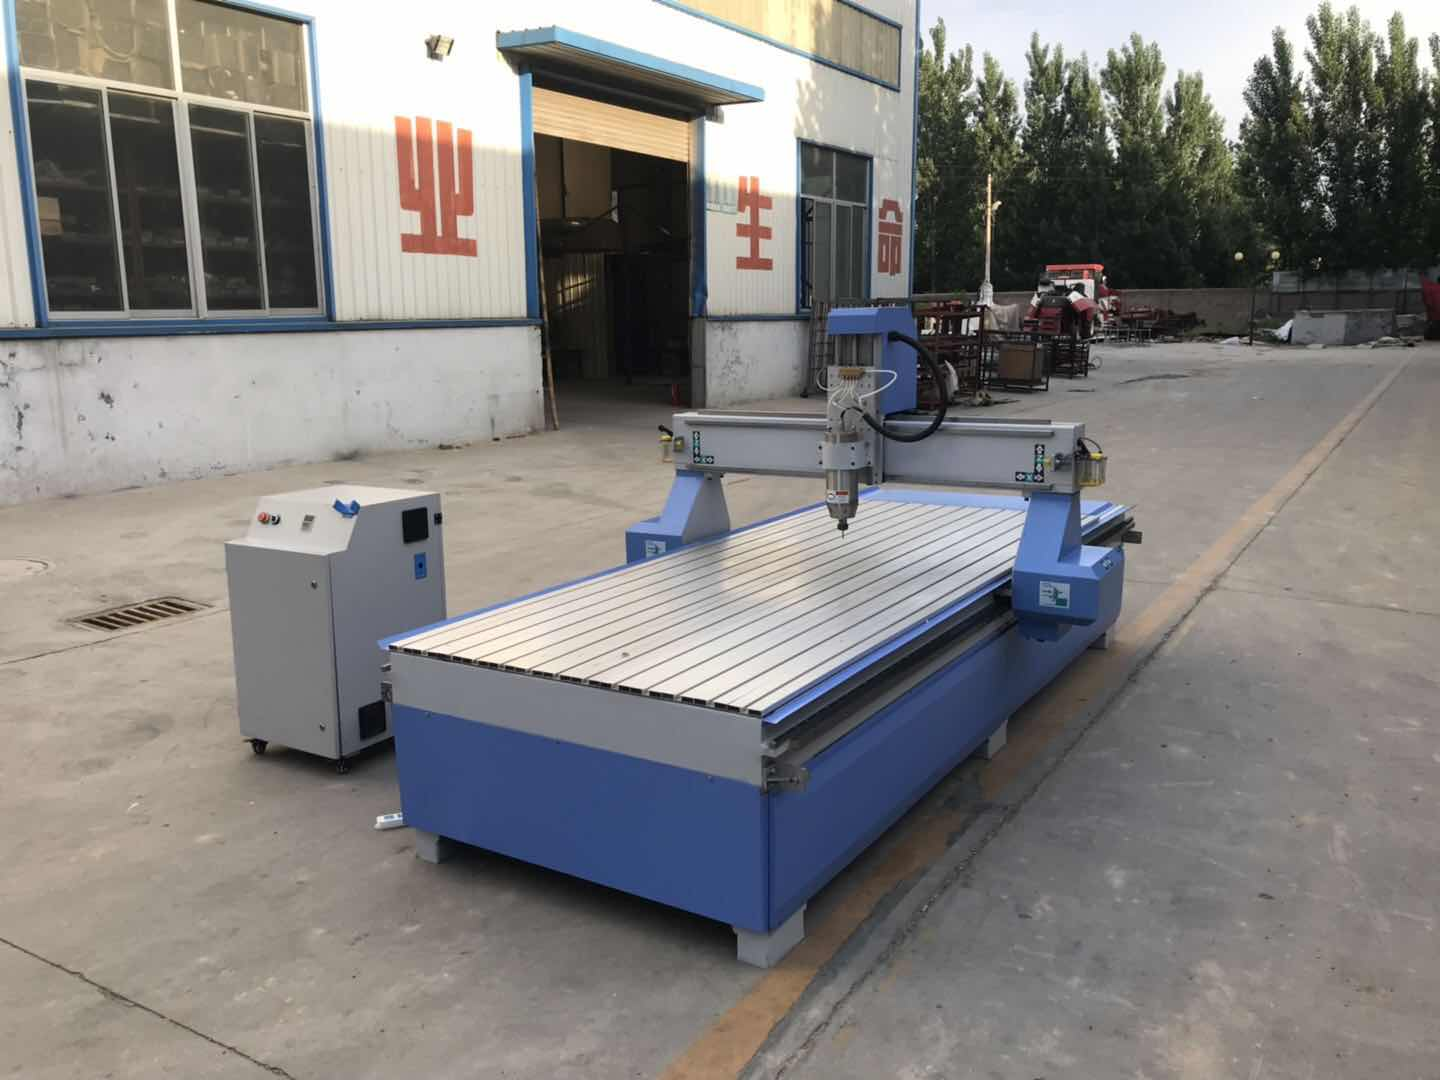 2040 cnc machine 2030 wood cnc 2128 cnc router 1530 cnc